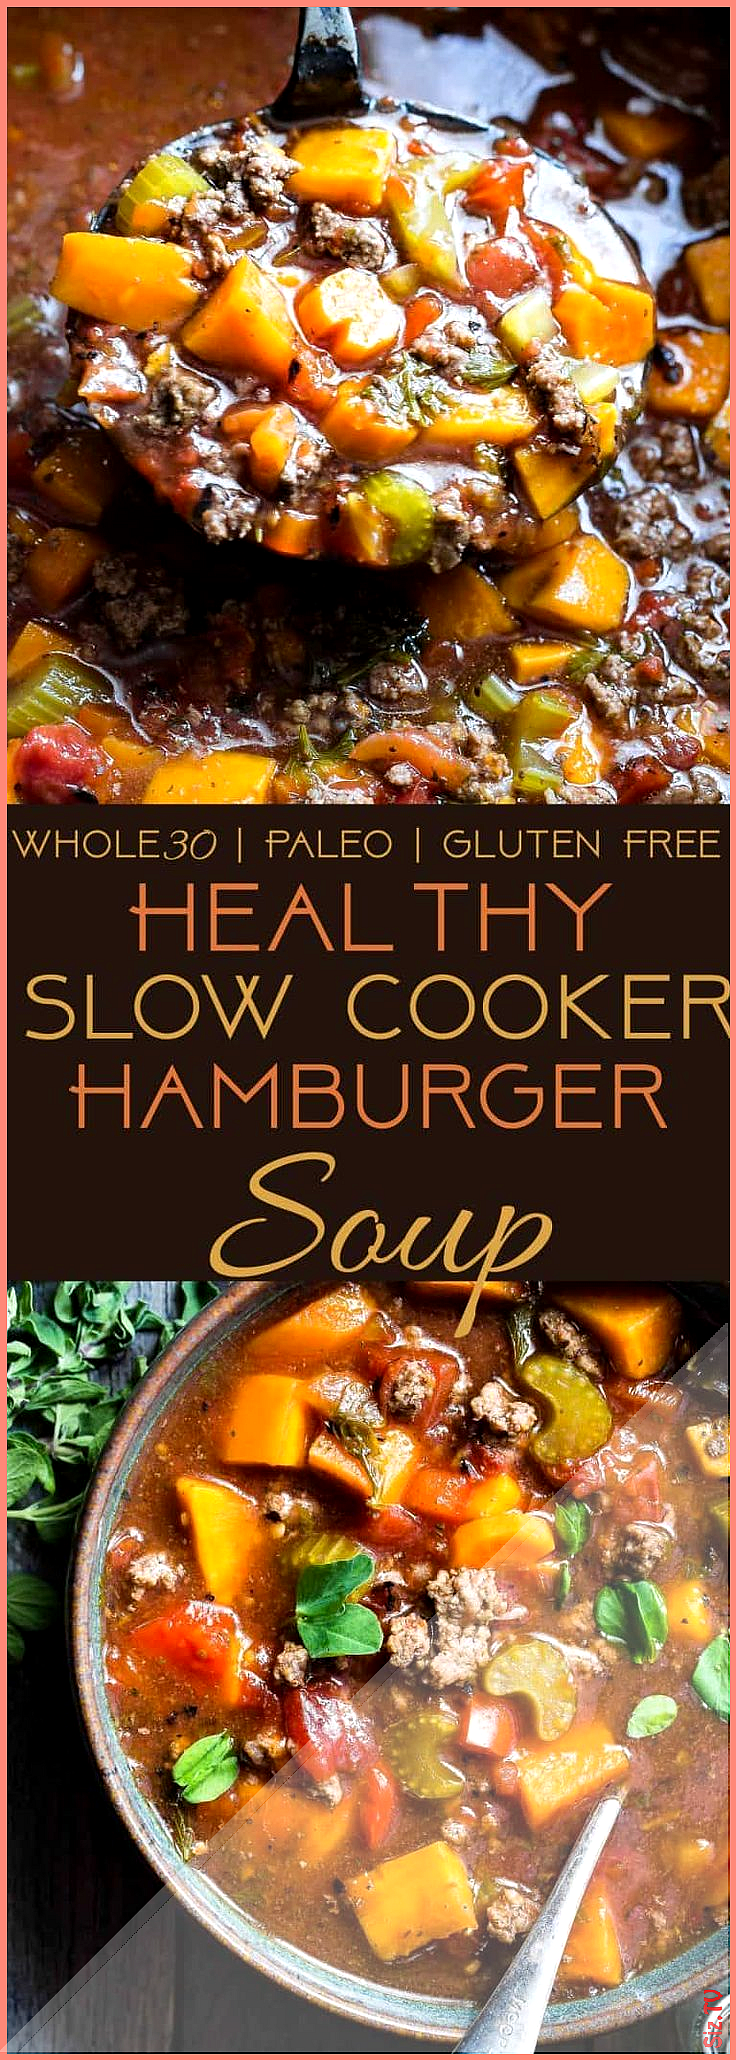 Crock Pot Paleo Hamburger Soup Recipe  Food Faith Fitness Crock Pot Paleo Hamburger Soup Recipe  Foo...